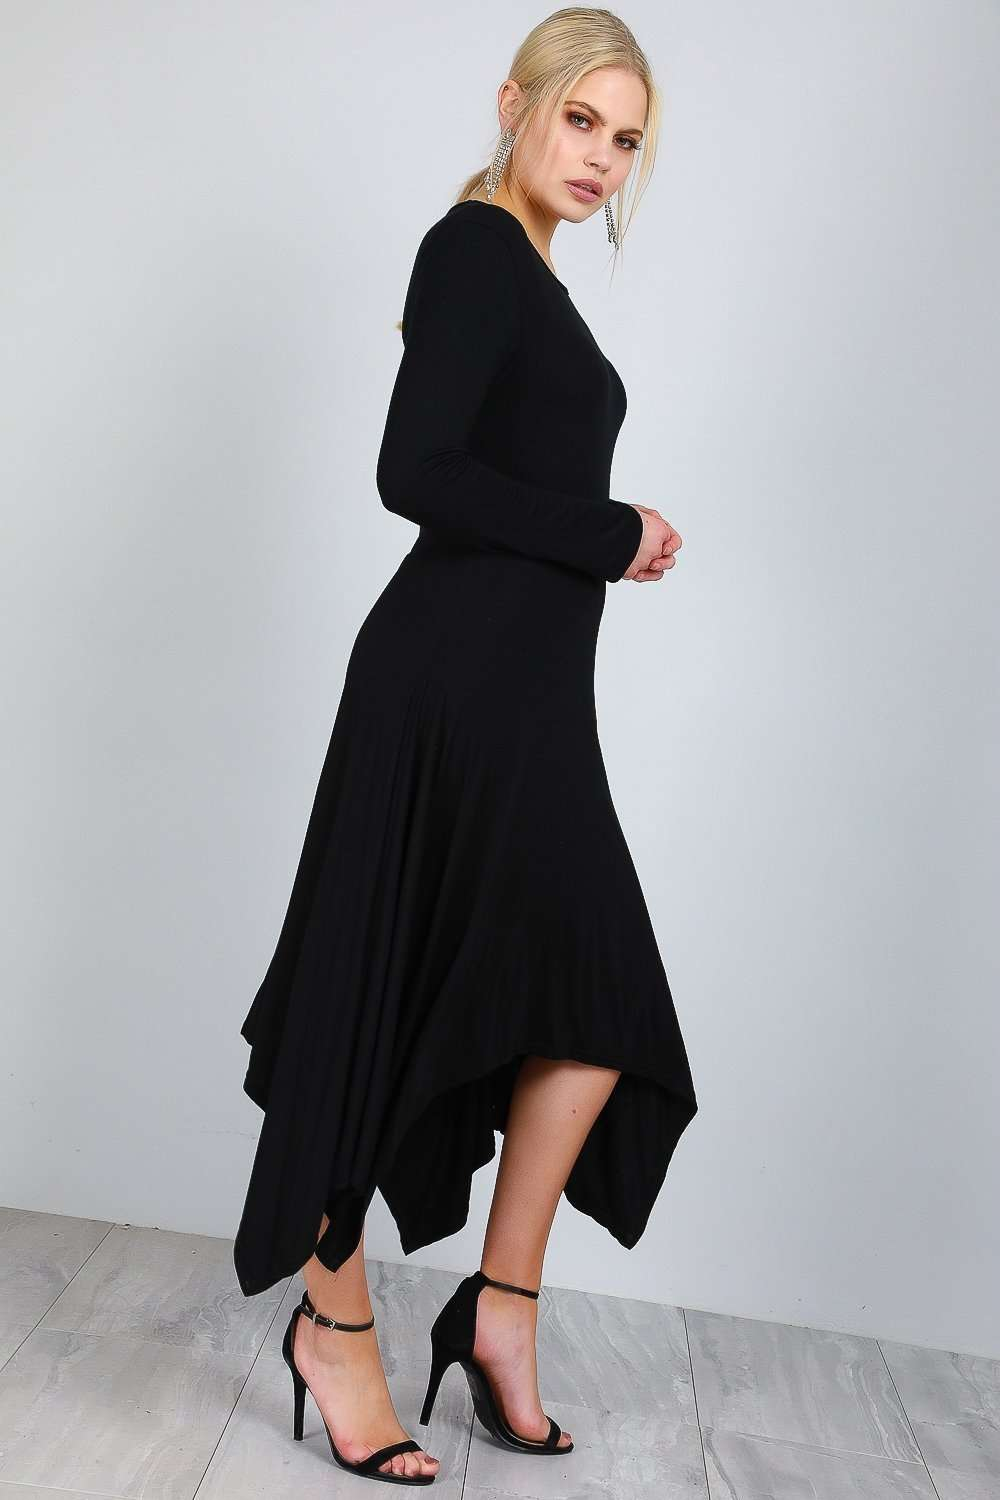 Long Sleeve Hanky Hem Navy Midi Dress - bejealous-com